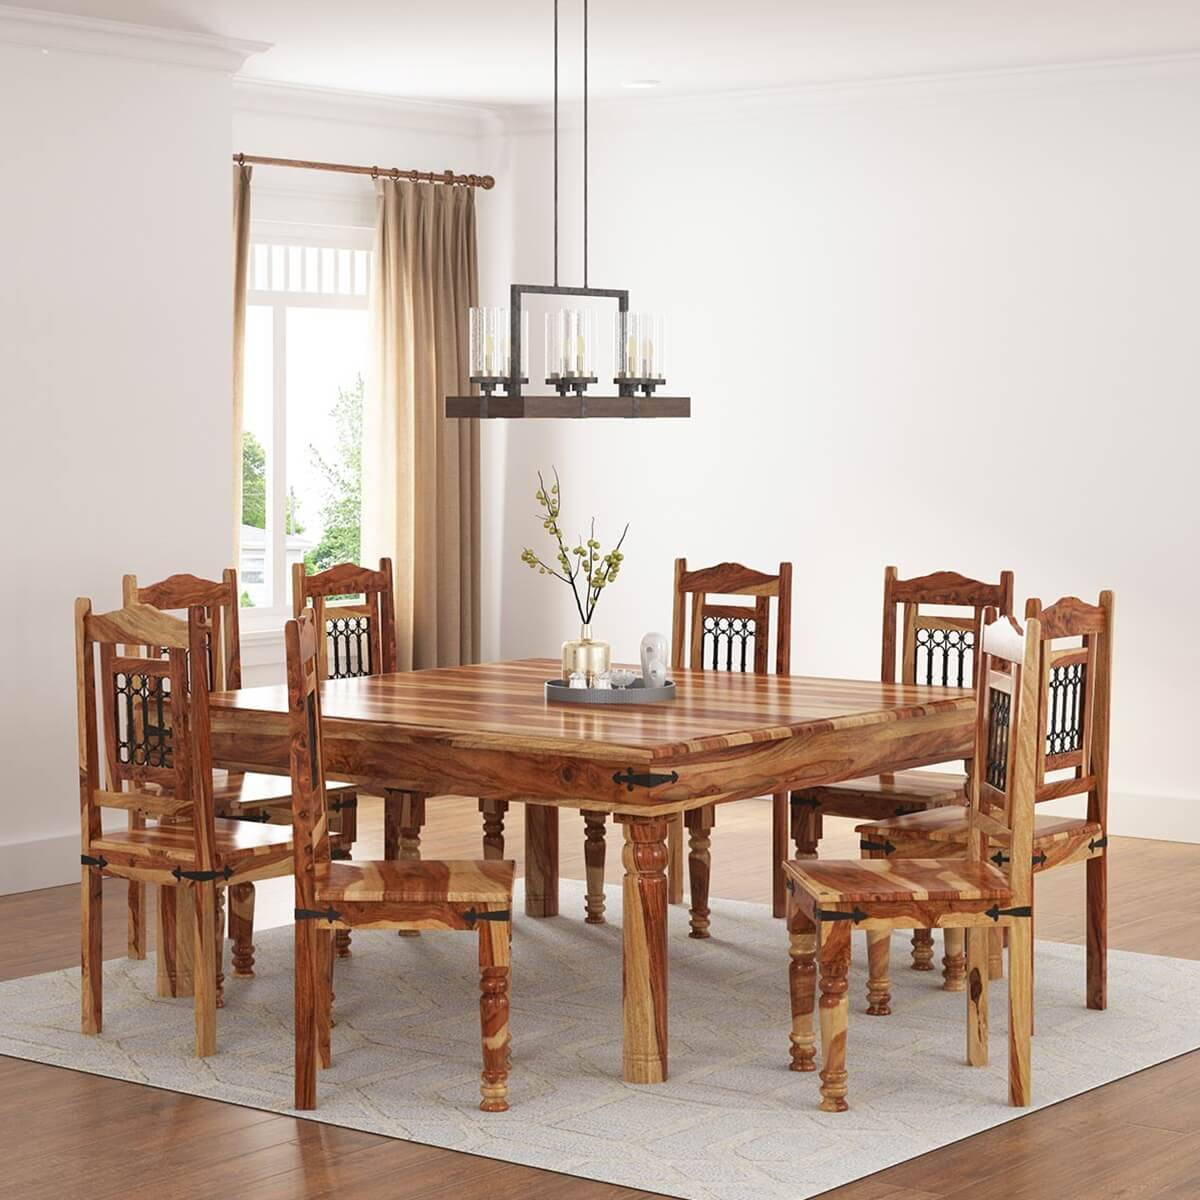 Peoria Solid Wood Large Square Dining Table & Chair Set